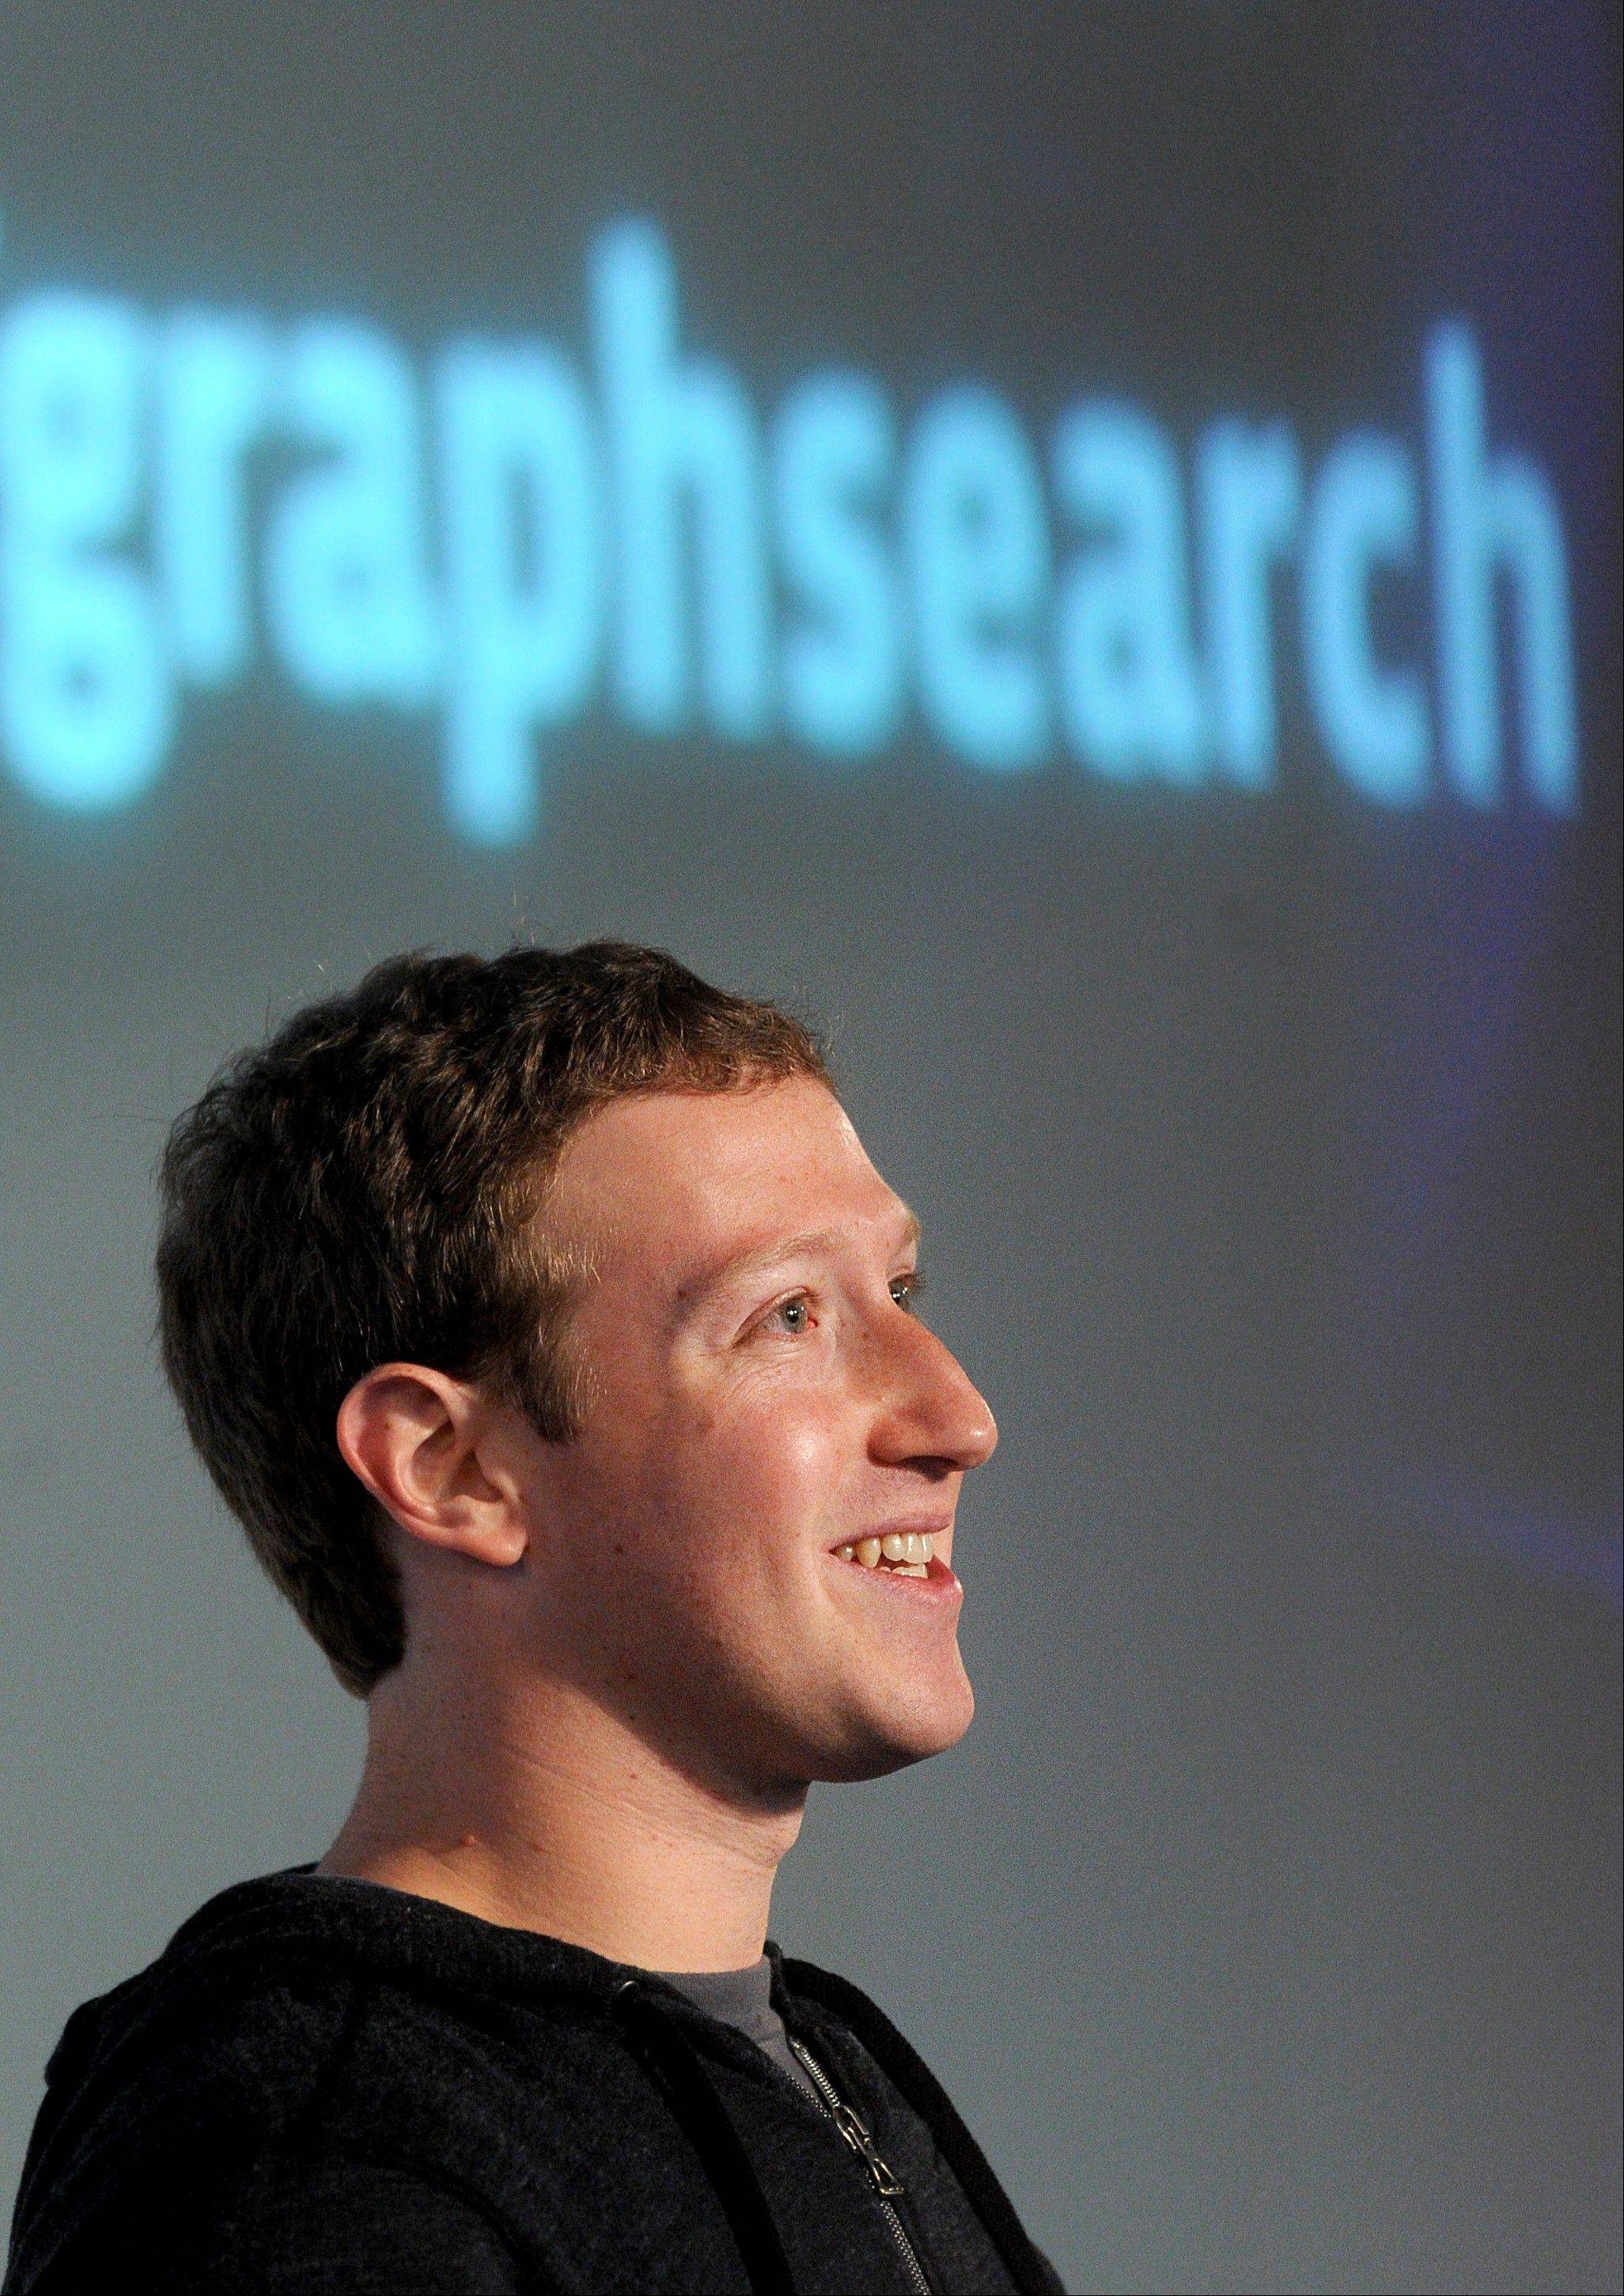 Mark Zuckerberg, chief executive officer and founder of Facebook Inc., introduces Graph Search at Facebook headquarters in Menlo Park, California, U.S., on Tuesday, Jan. 15, 2013. Facebook Inc. introduced a search tool for its social network of more than 1 billion users, seeking to improve features to attract more users and advertisers.